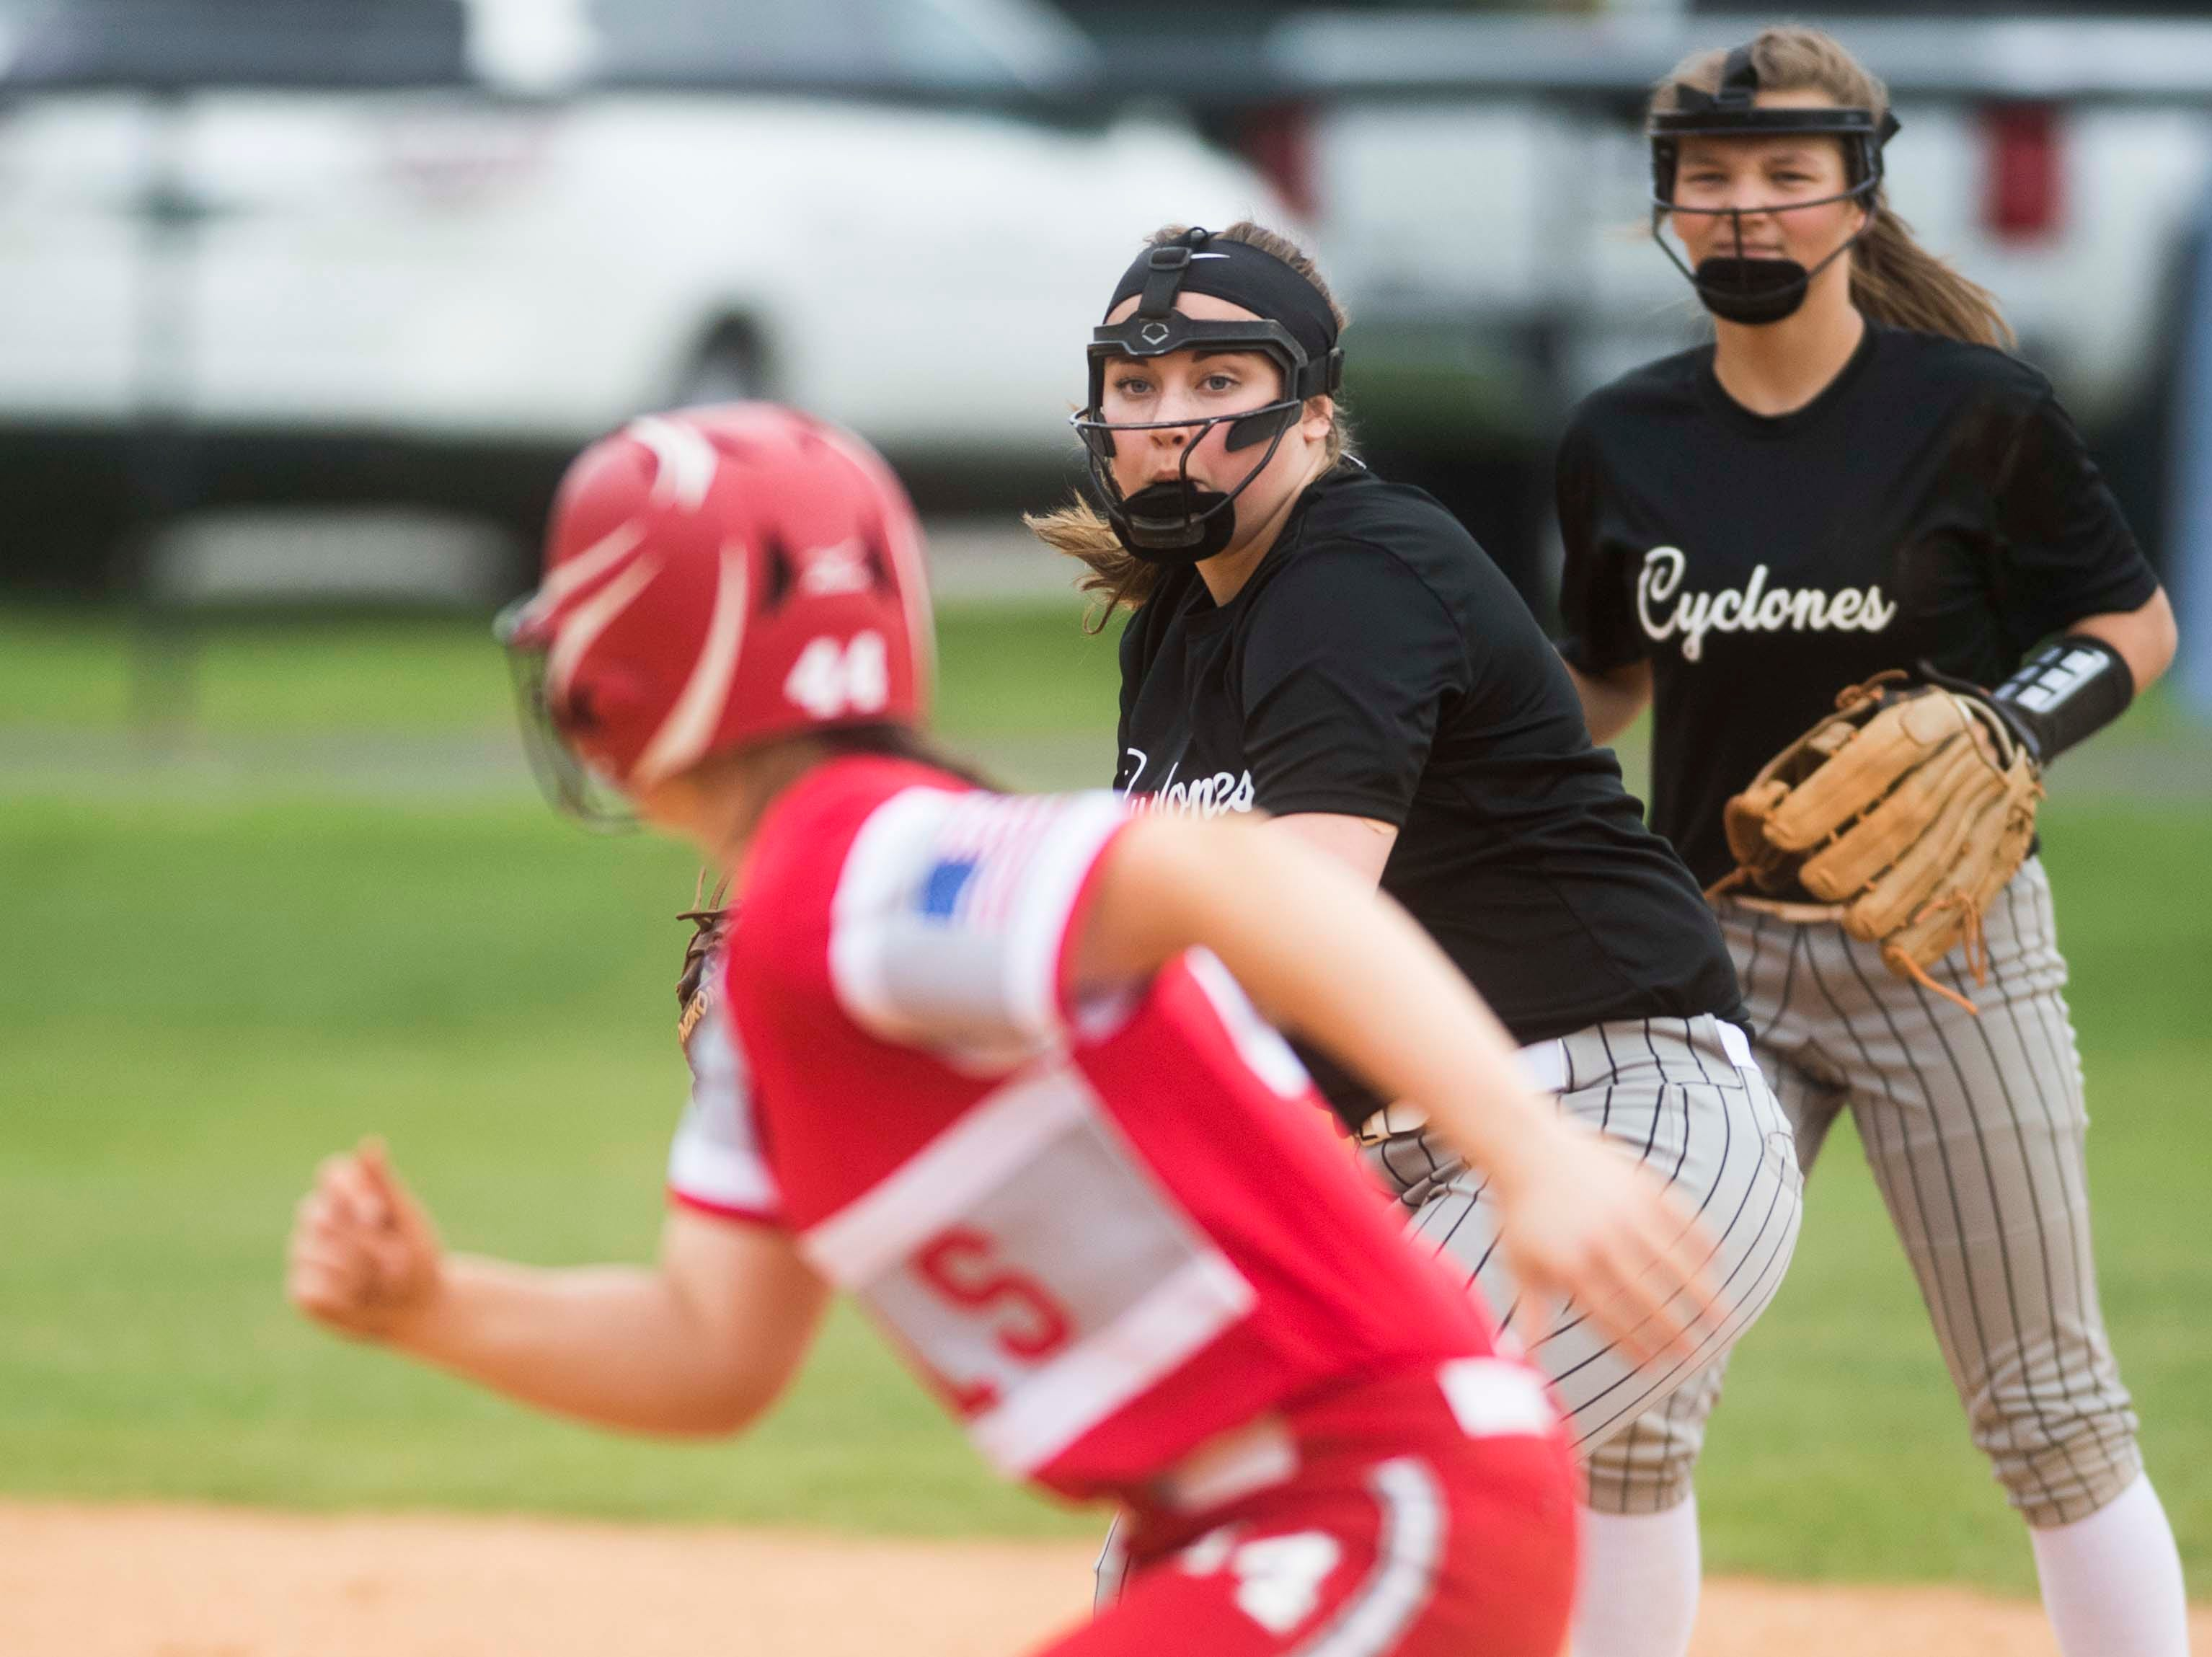 Elizabethton players play a game of chicken with a Halls player between first and second during a high school softball game between Halls and Elizabethton at Halls Friday, April 12, 2019. Halls defeated Elizabethton.